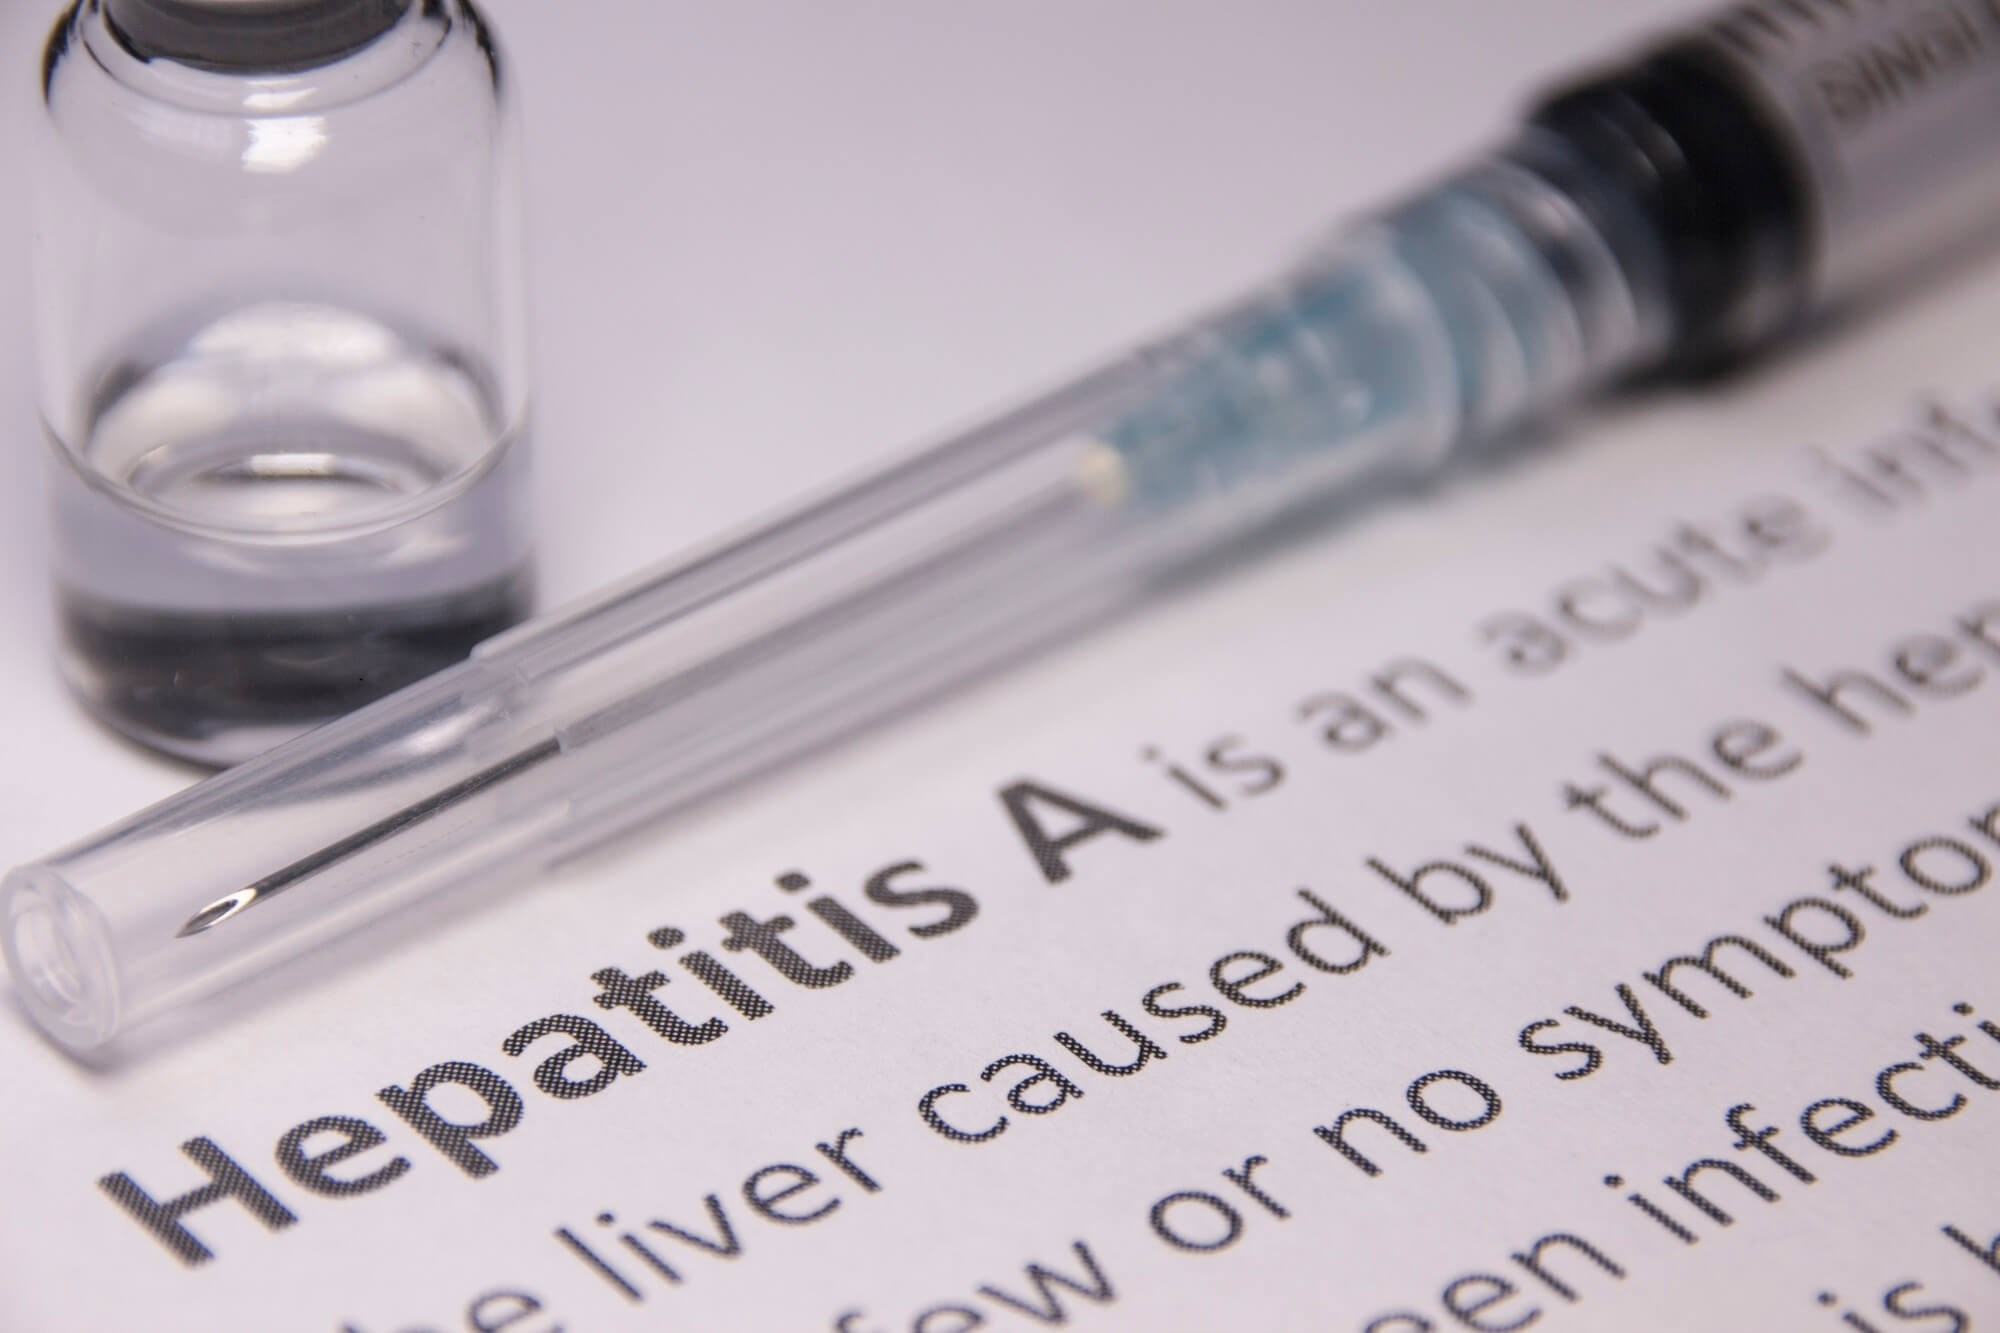 Updated Recommendations, Hepatitis A Vaccine Postexposure Prophylaxis and Travel